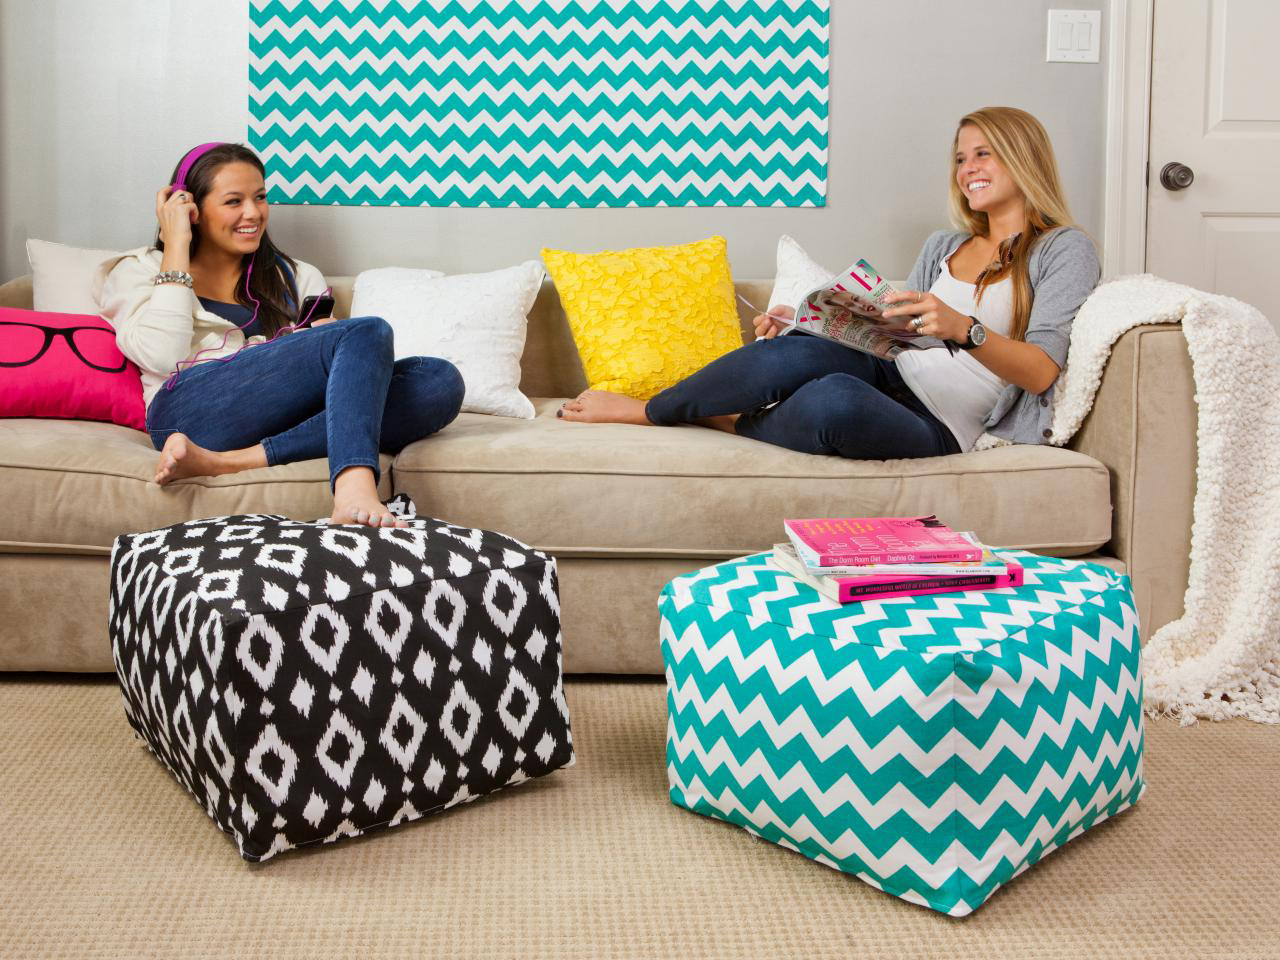 Photo Courtesy of  HGTV    Whether dorming with a friend or a new acquaintance, it is important to be respectful and aware of your shared space.